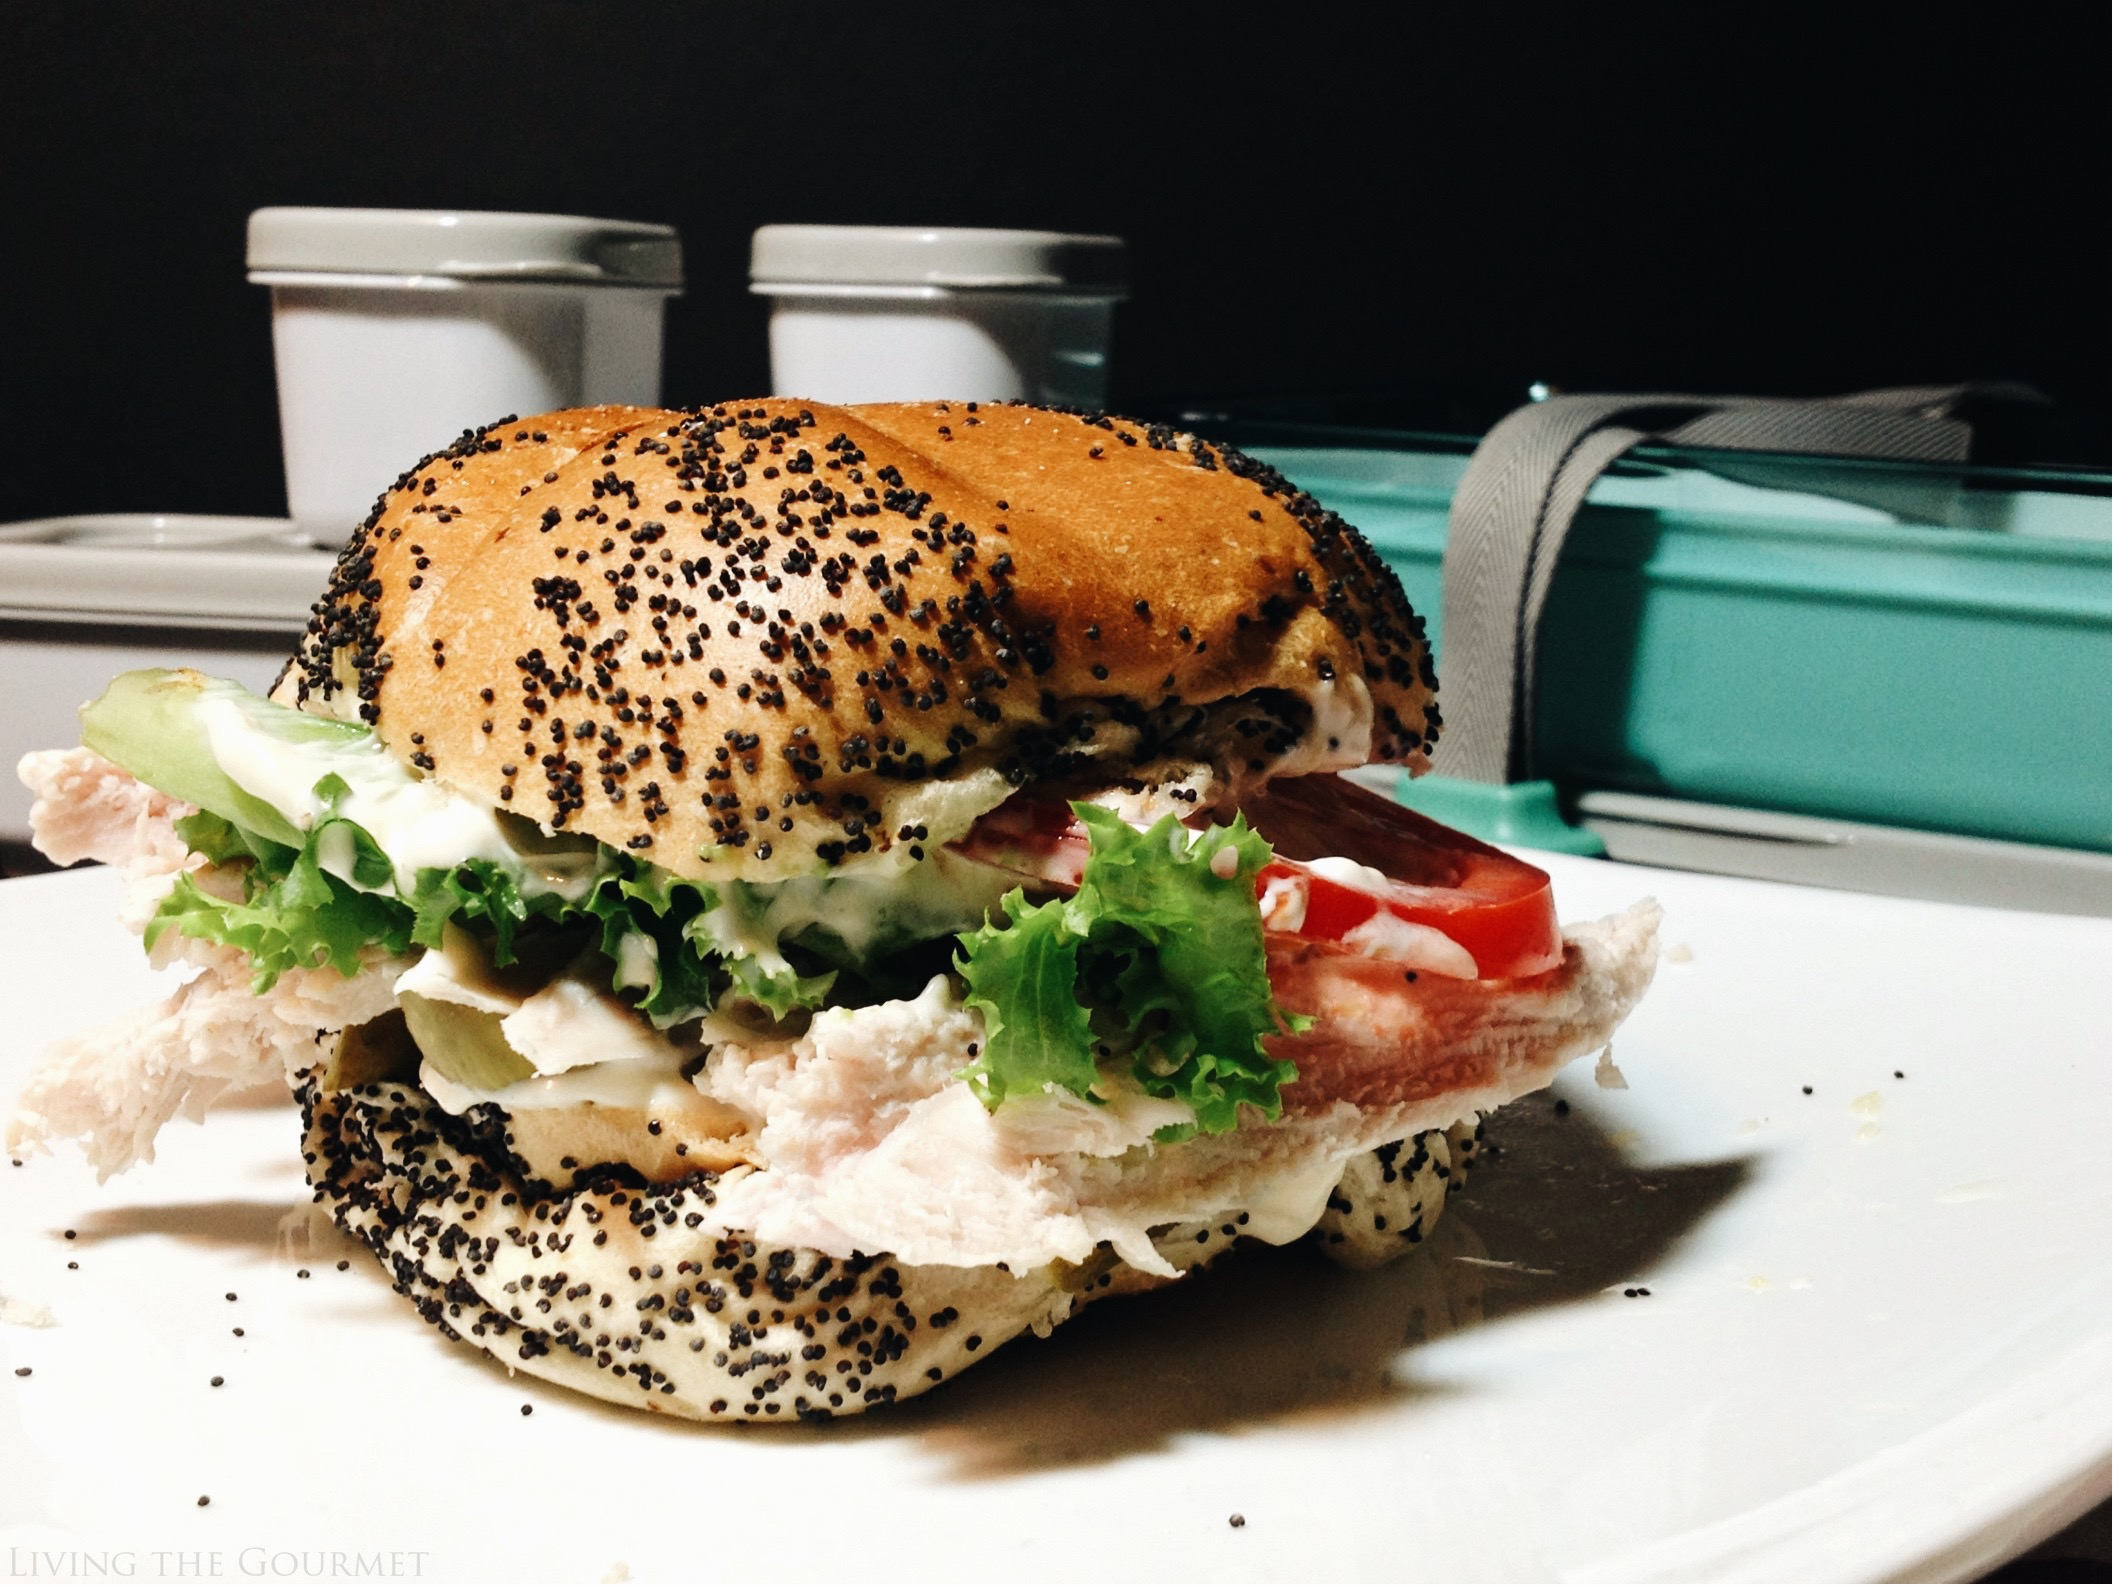 Living the Gourmet: Leftover Holiday Sandwiches | #FastenNGo #Pmedia #ad